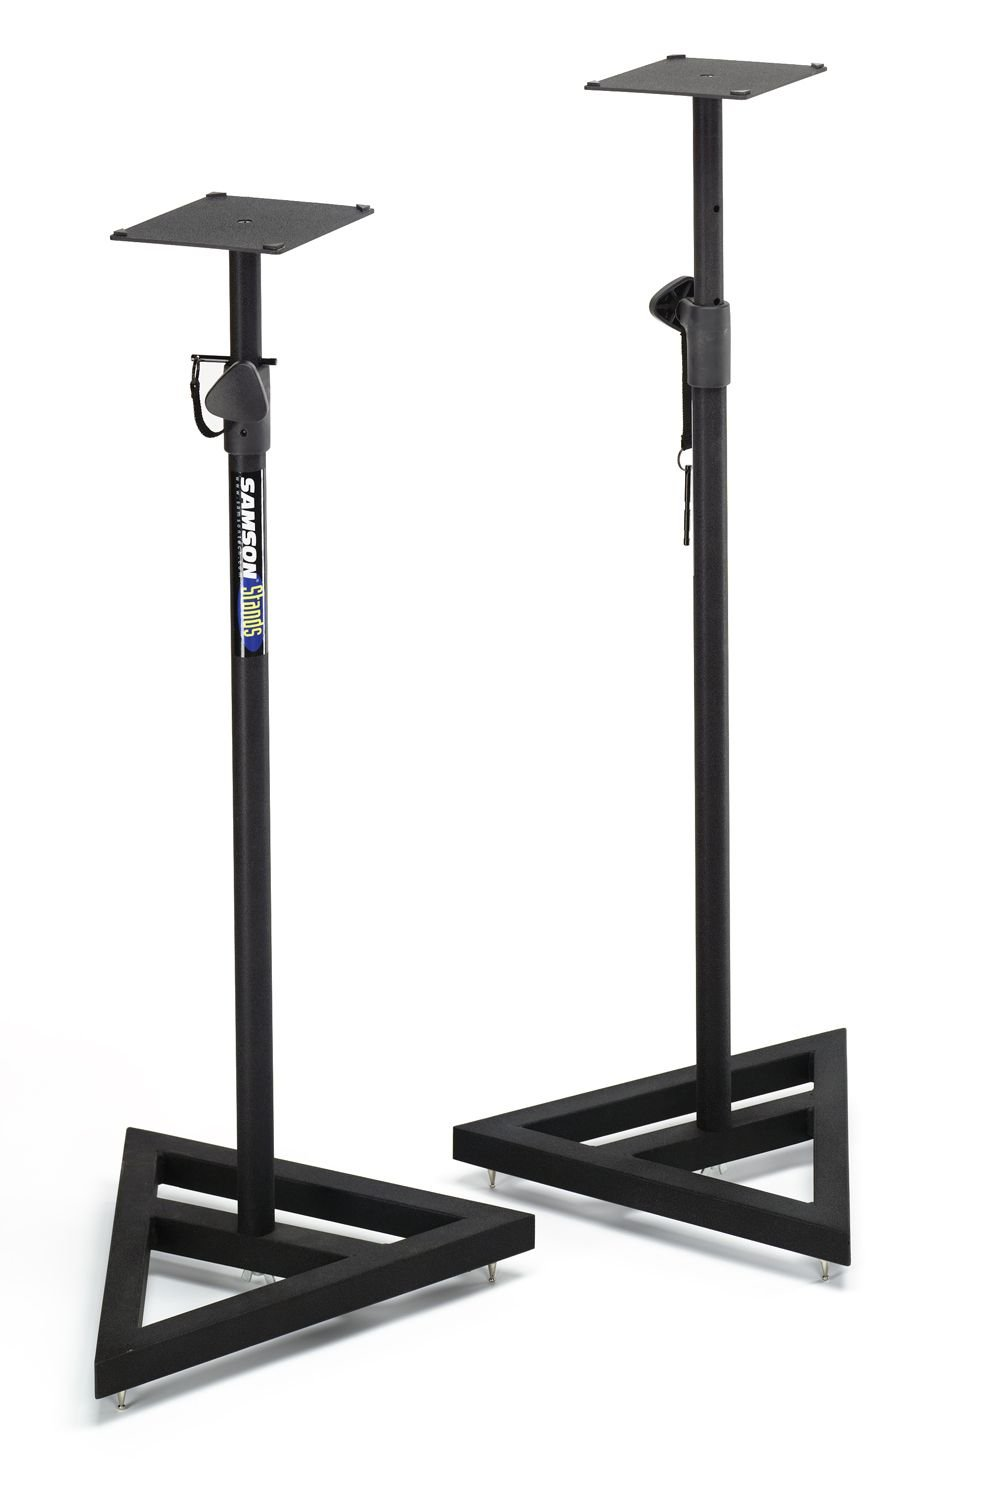 SAMSON MS200 / STUDIO SPEAKER STANDS